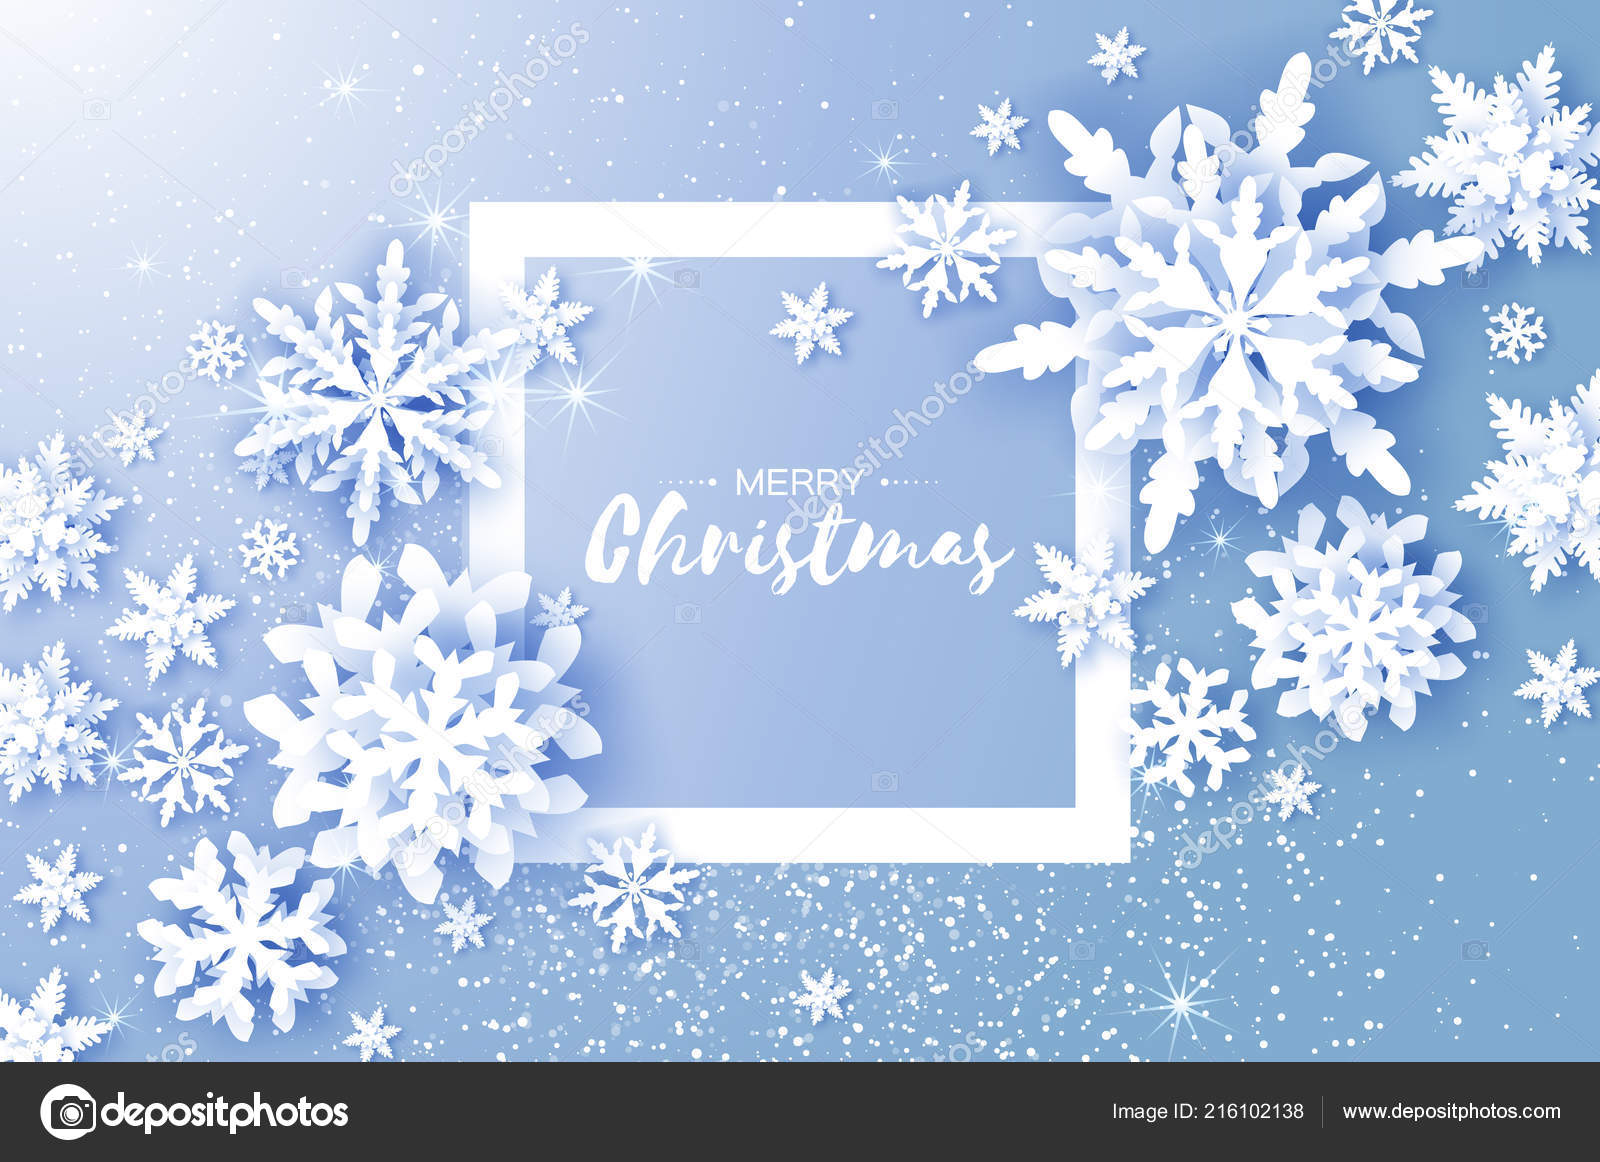 Merry Christmas Happy New Year Greetings Card White Paper Cut